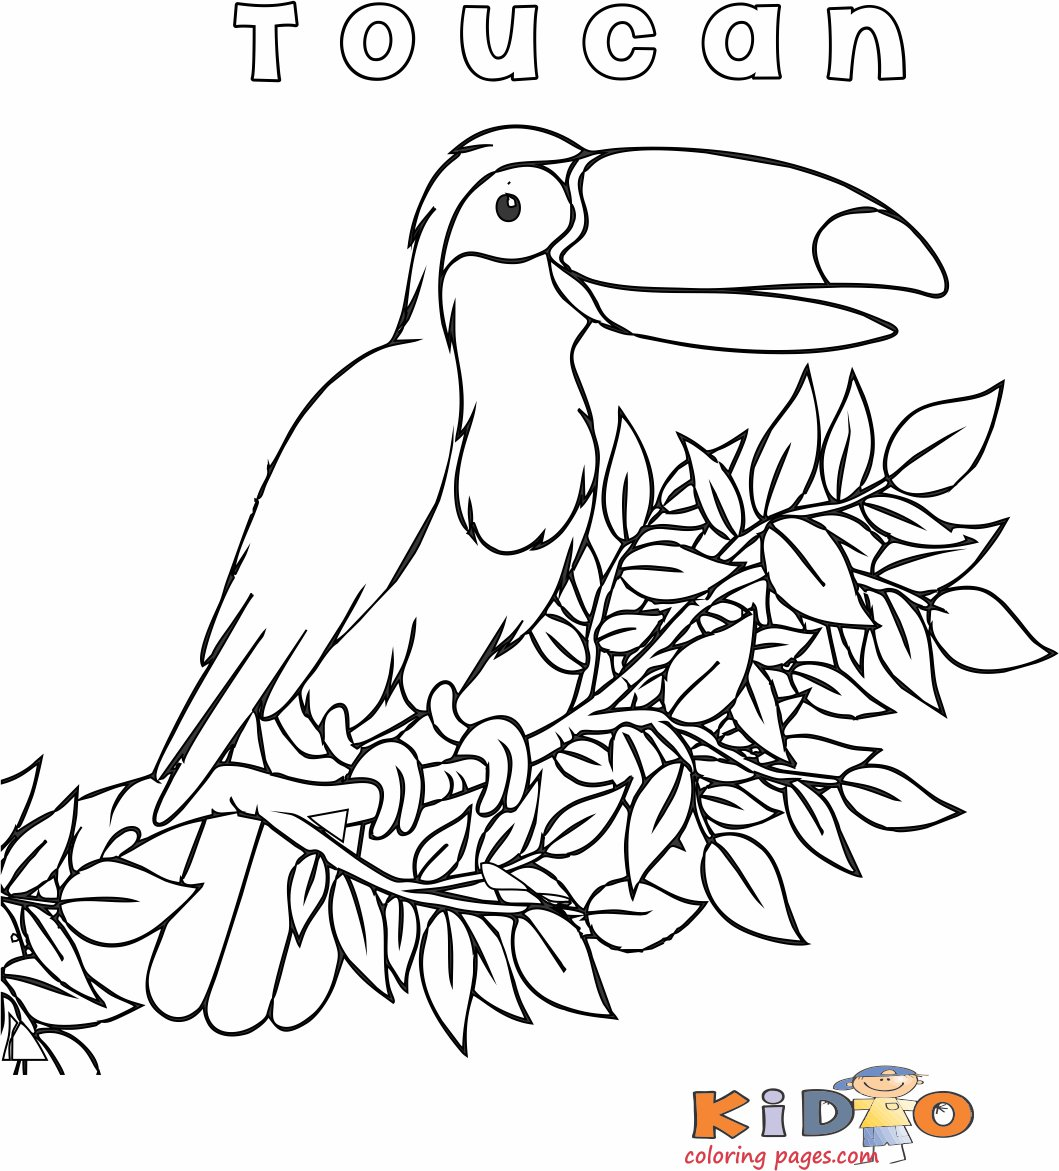 Toucan bird coloring page preschoolers